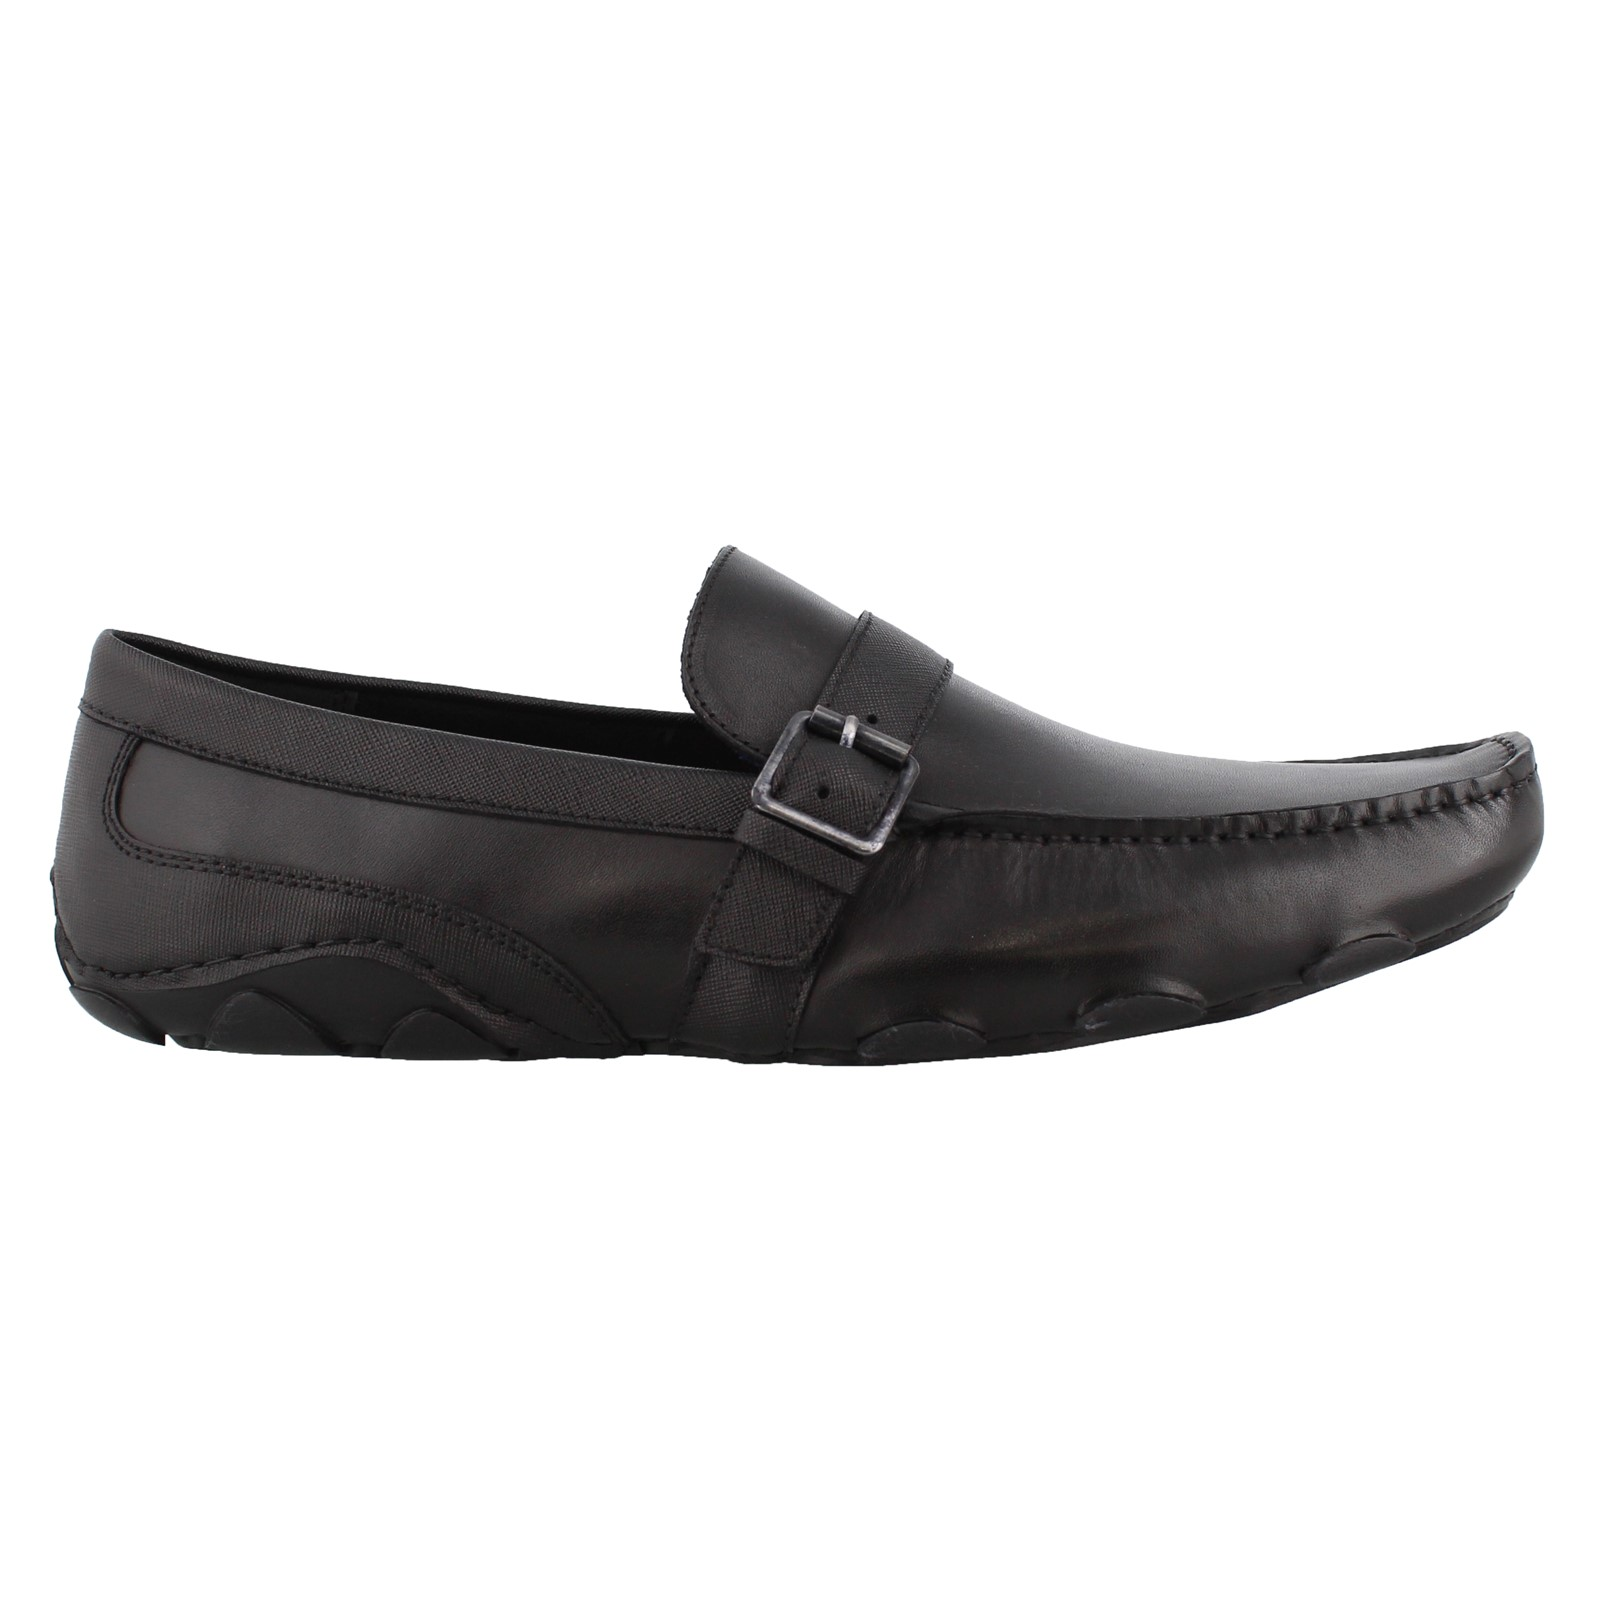 Men's KENNETH COLE REACTION, TOAST SLIP ON DRIVER